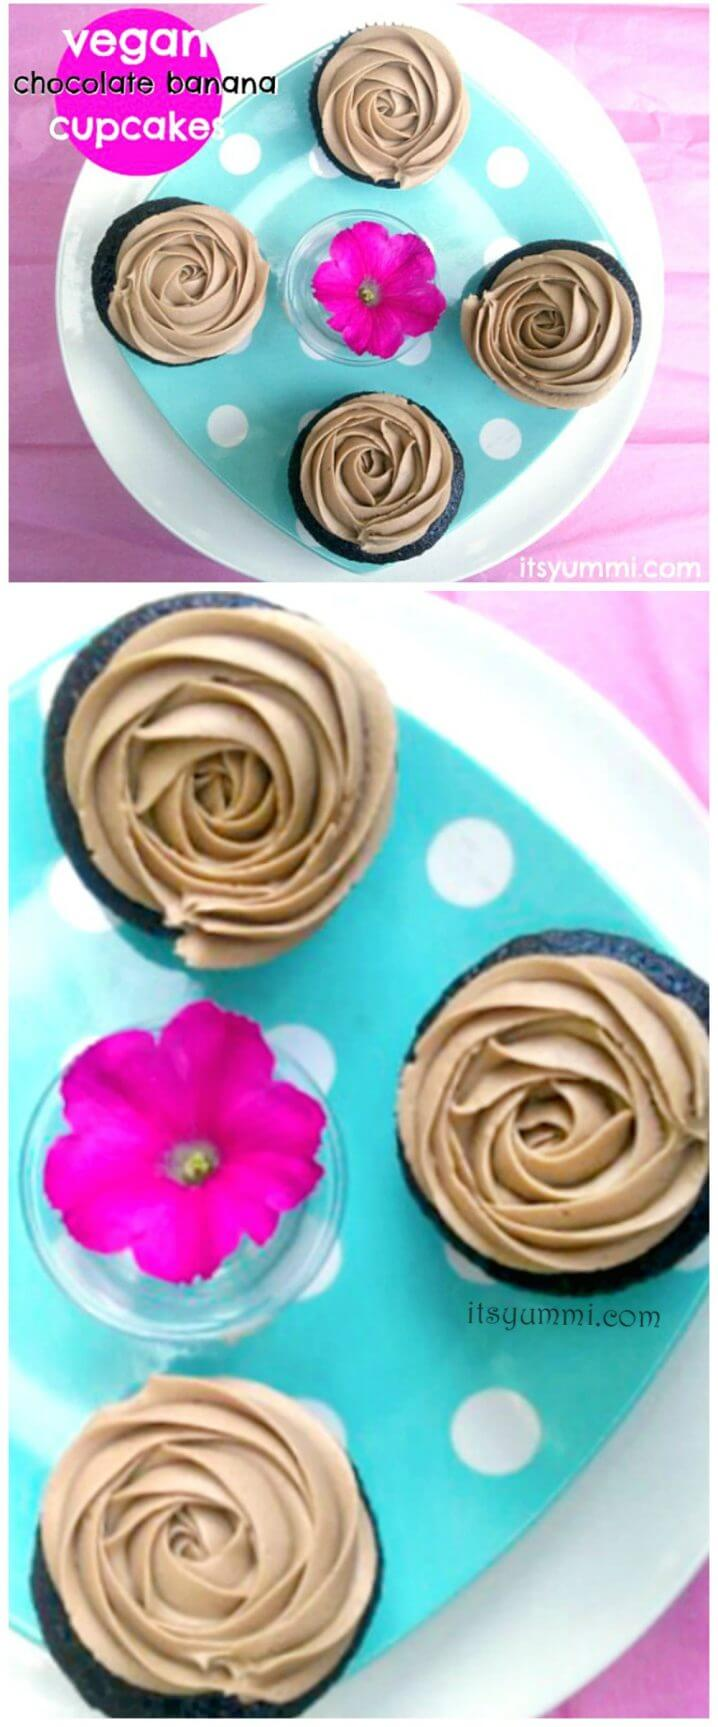 Vegan Chocolate Cupcakes - These cupcakes are made with real chocolate and no dairy products. Banana is substituted for some of the fat, so they're a bit lower in calories, too. Get the recipe from @itsyummi